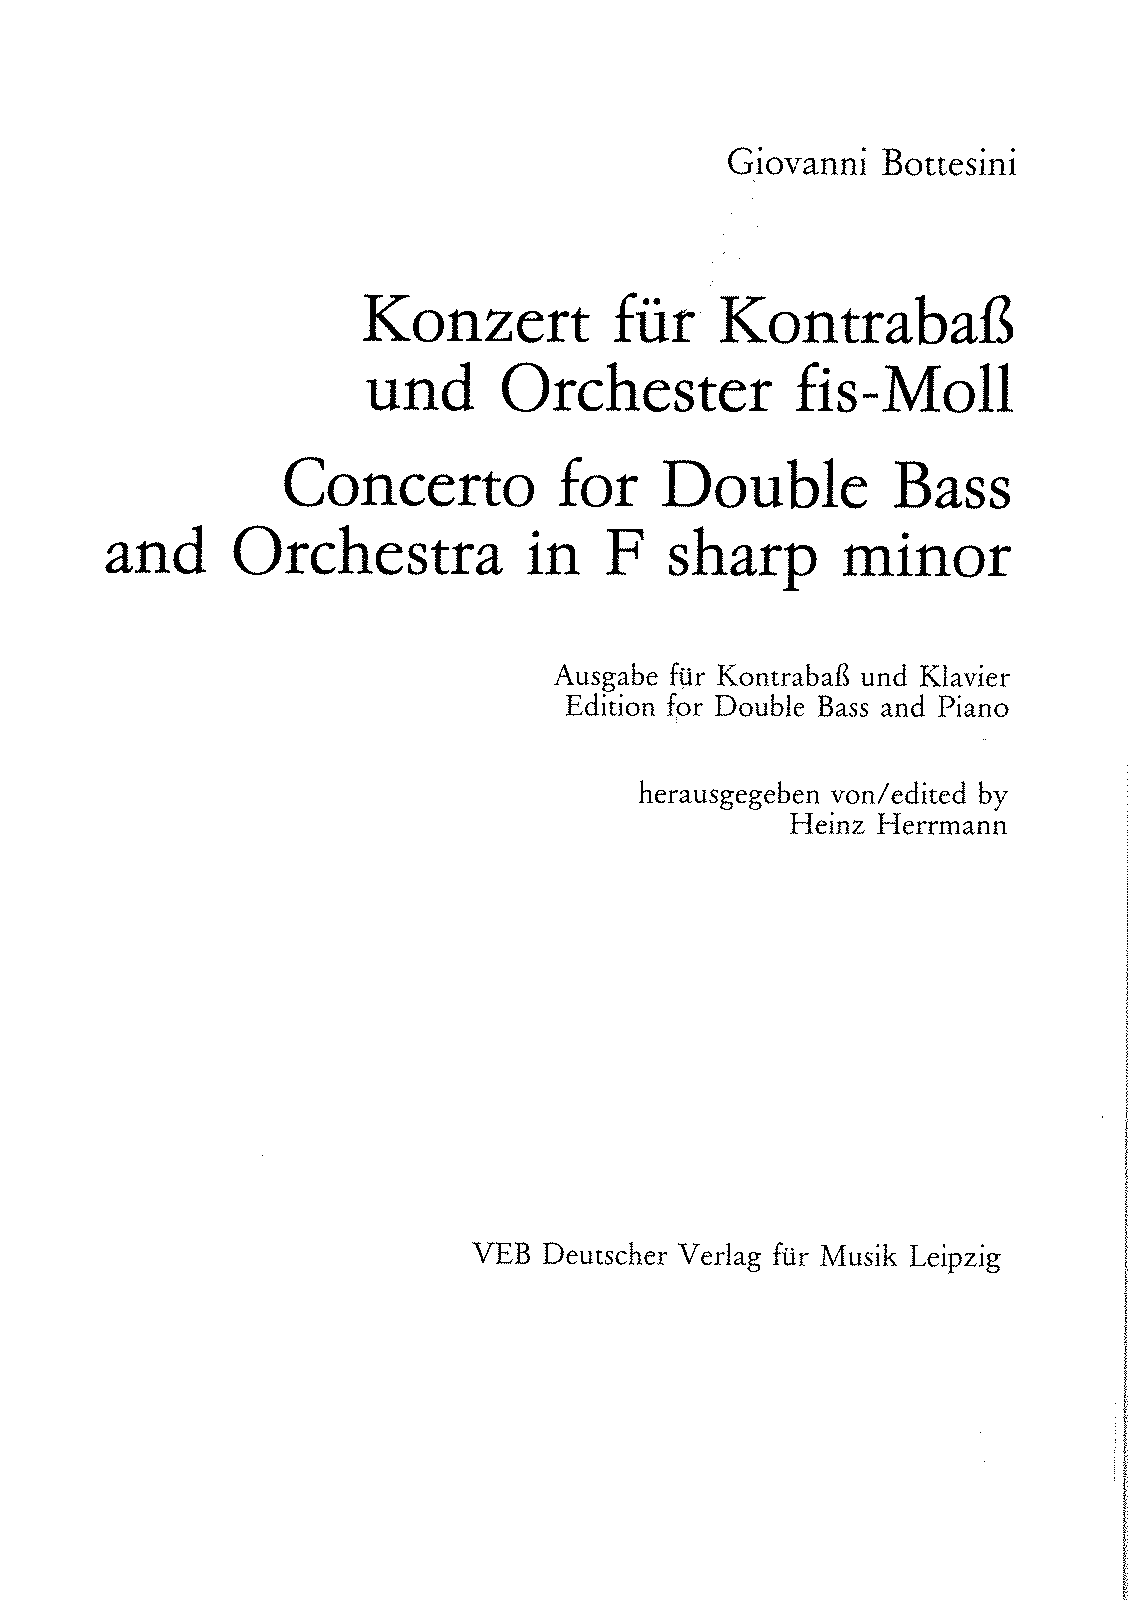 PMLP111075-Bottesini, Giovanni - Concerto for Double Bass and Orchestra in F sharp minor -Double bass and piano-.pdf